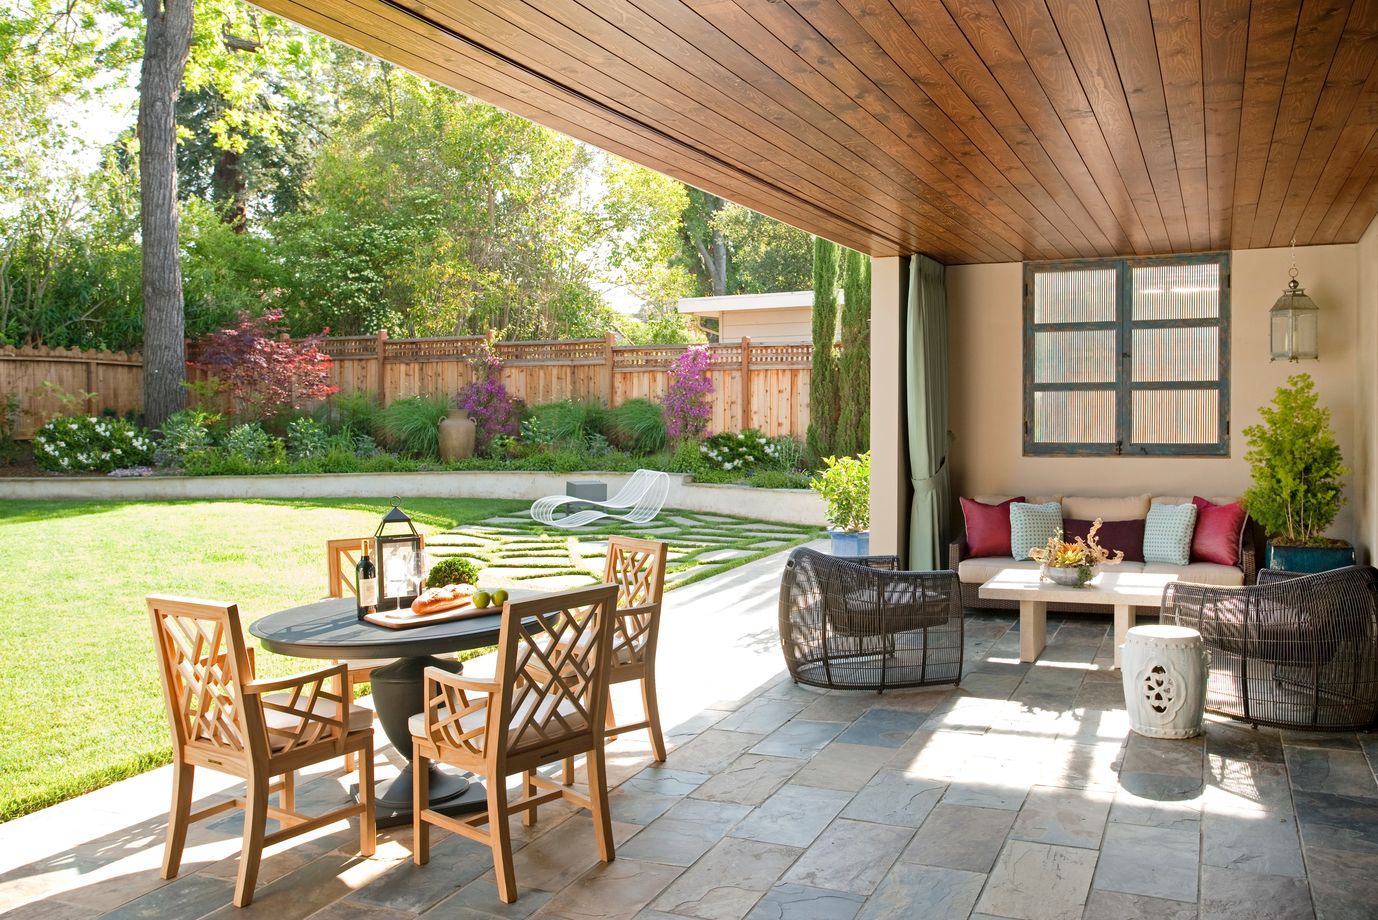 Outdoor Living 8 Ideas To Get The Most Out Of Your Space Porch Advice